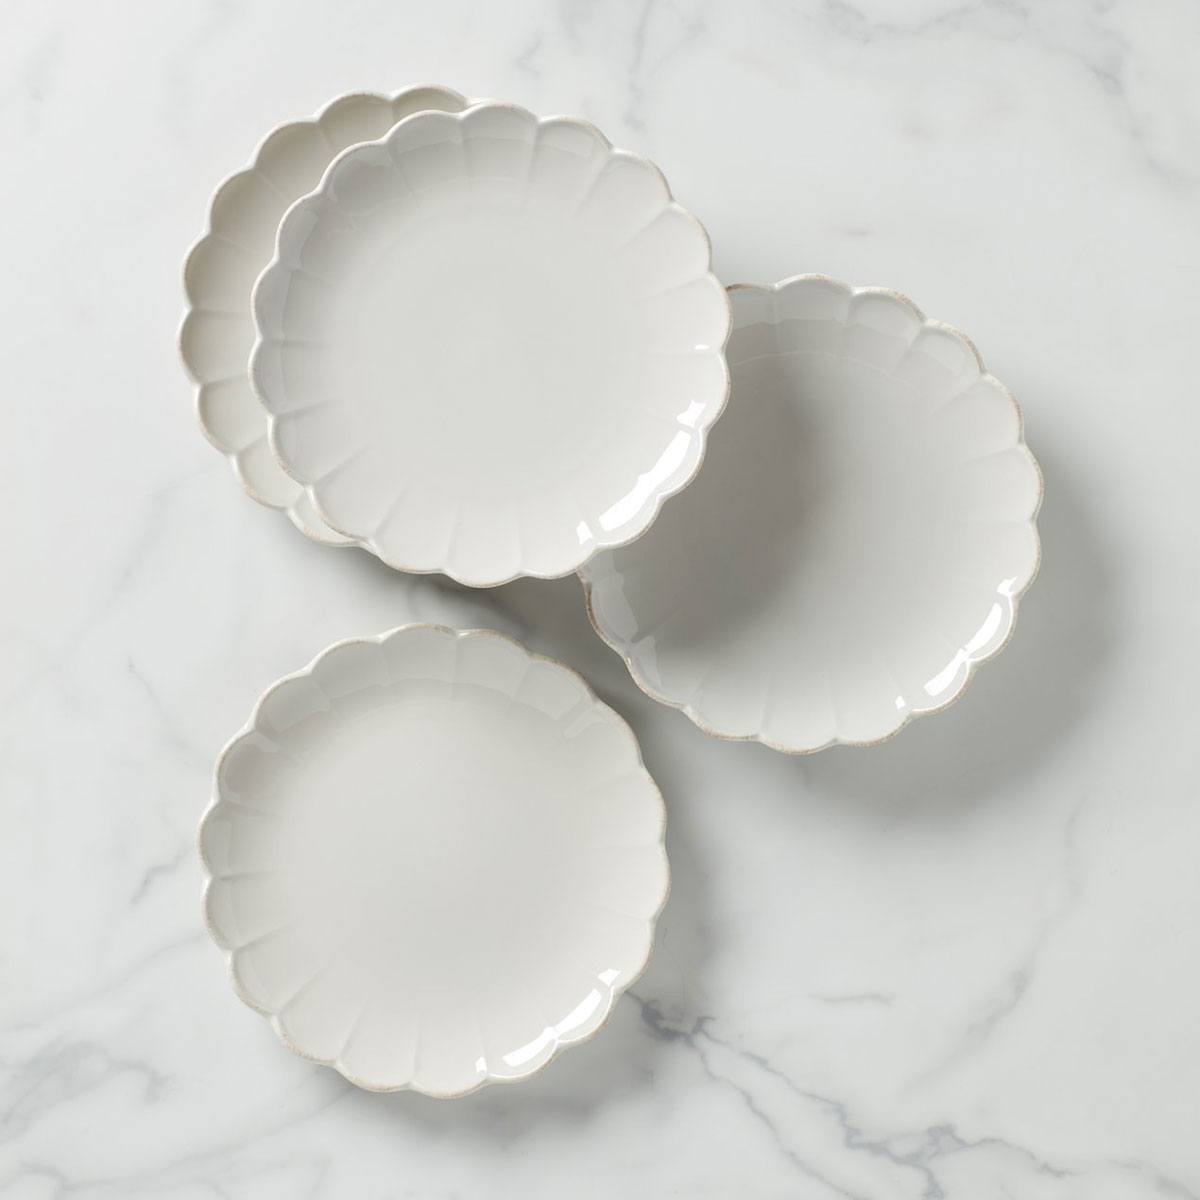 Lenox French Perle Scallop 4 Piece Accent Plate Set